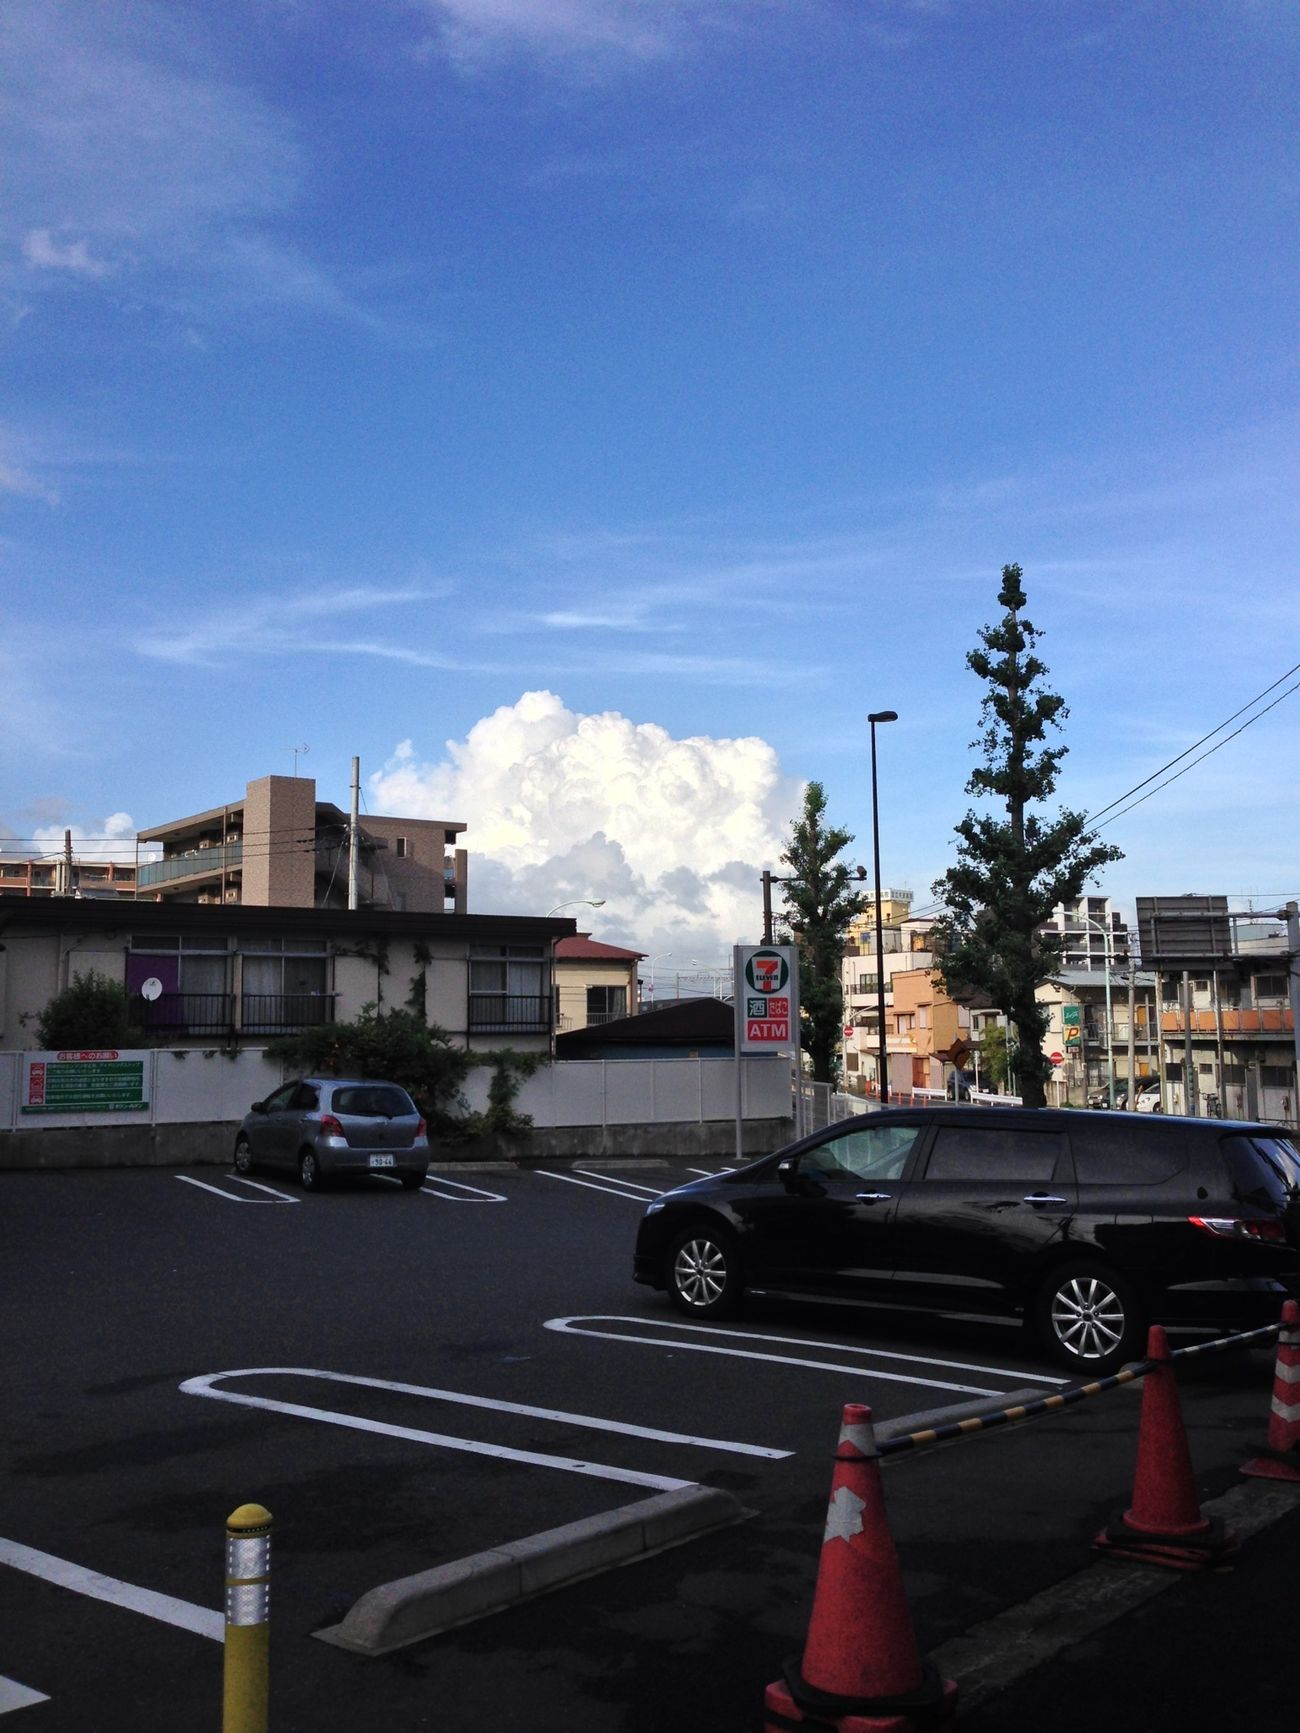 Thunderhead after typhoon. Clouds GetYourGuide - Cityscapes